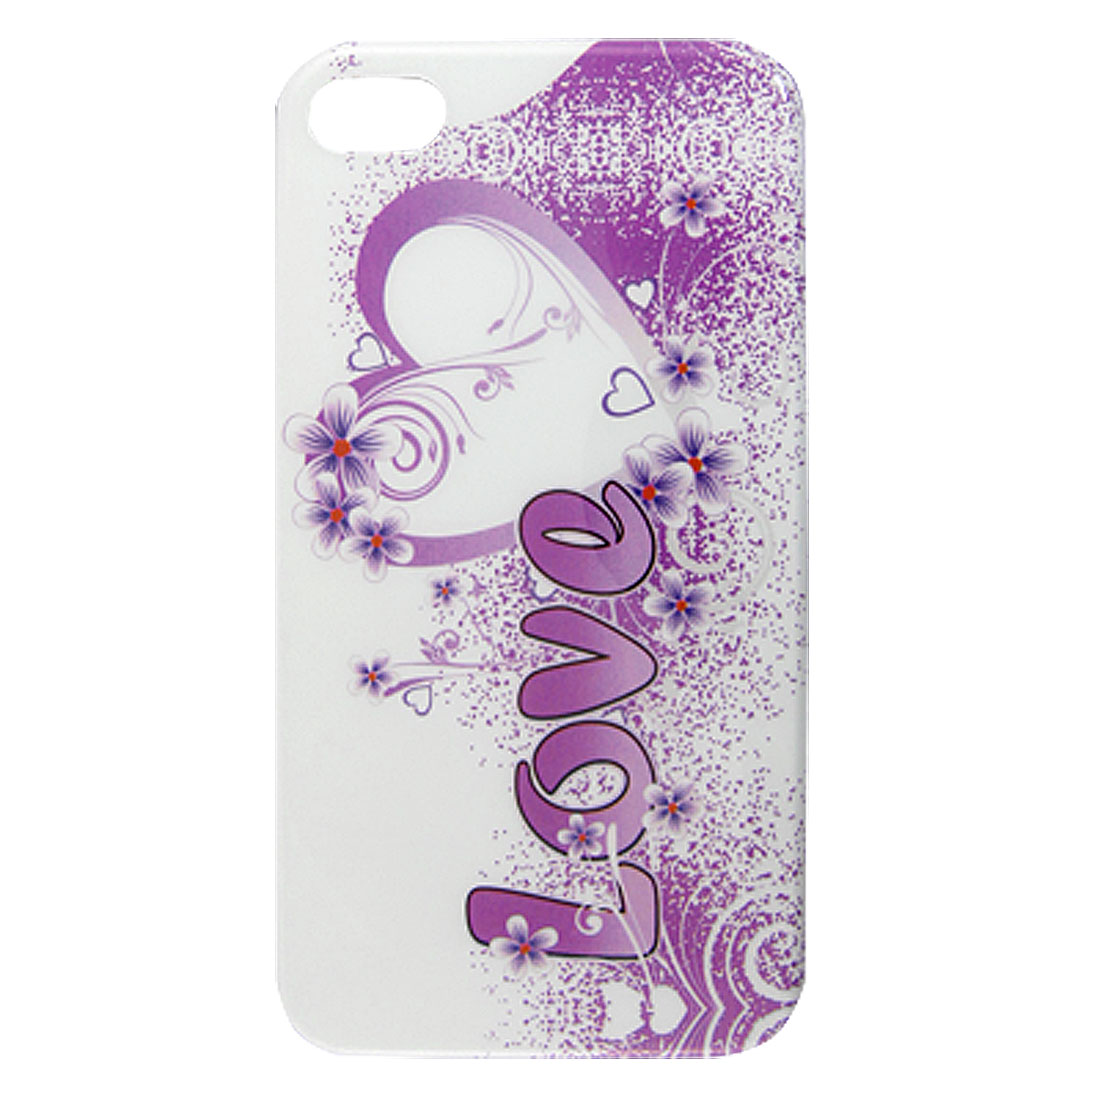 IMD Purple Heart Flower Print White Hard Back Shell Case for iPhone 4 4G 4S 4GS